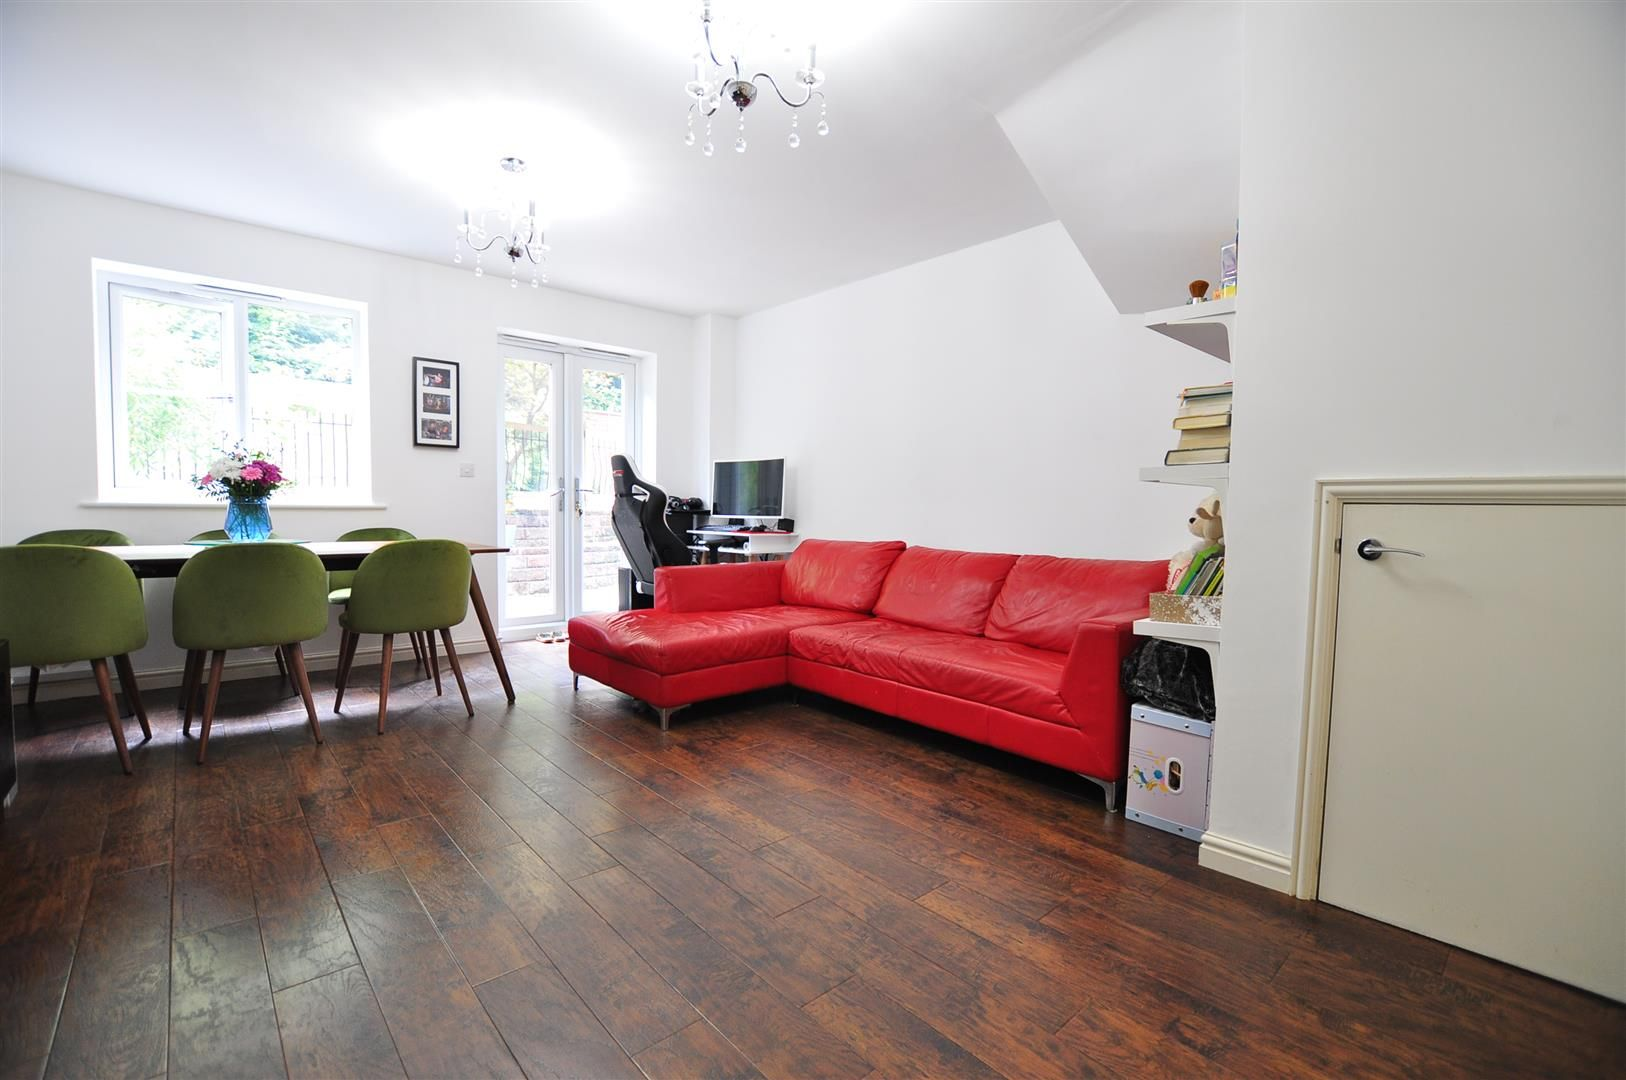 4 bed end-of-terrace for sale 2